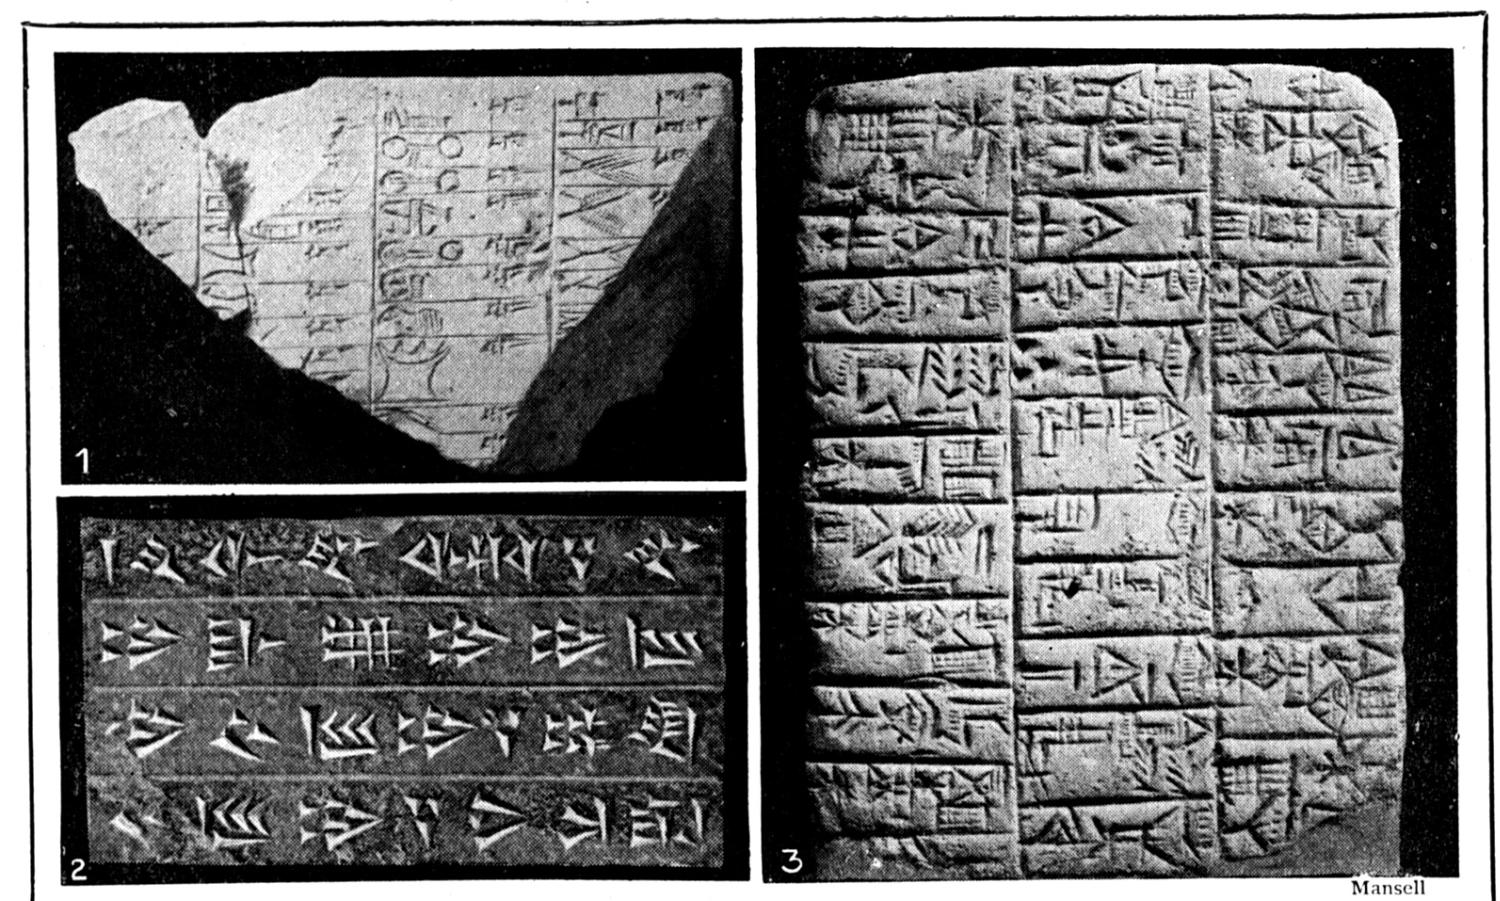 sumerian-writing-and-cuneiform